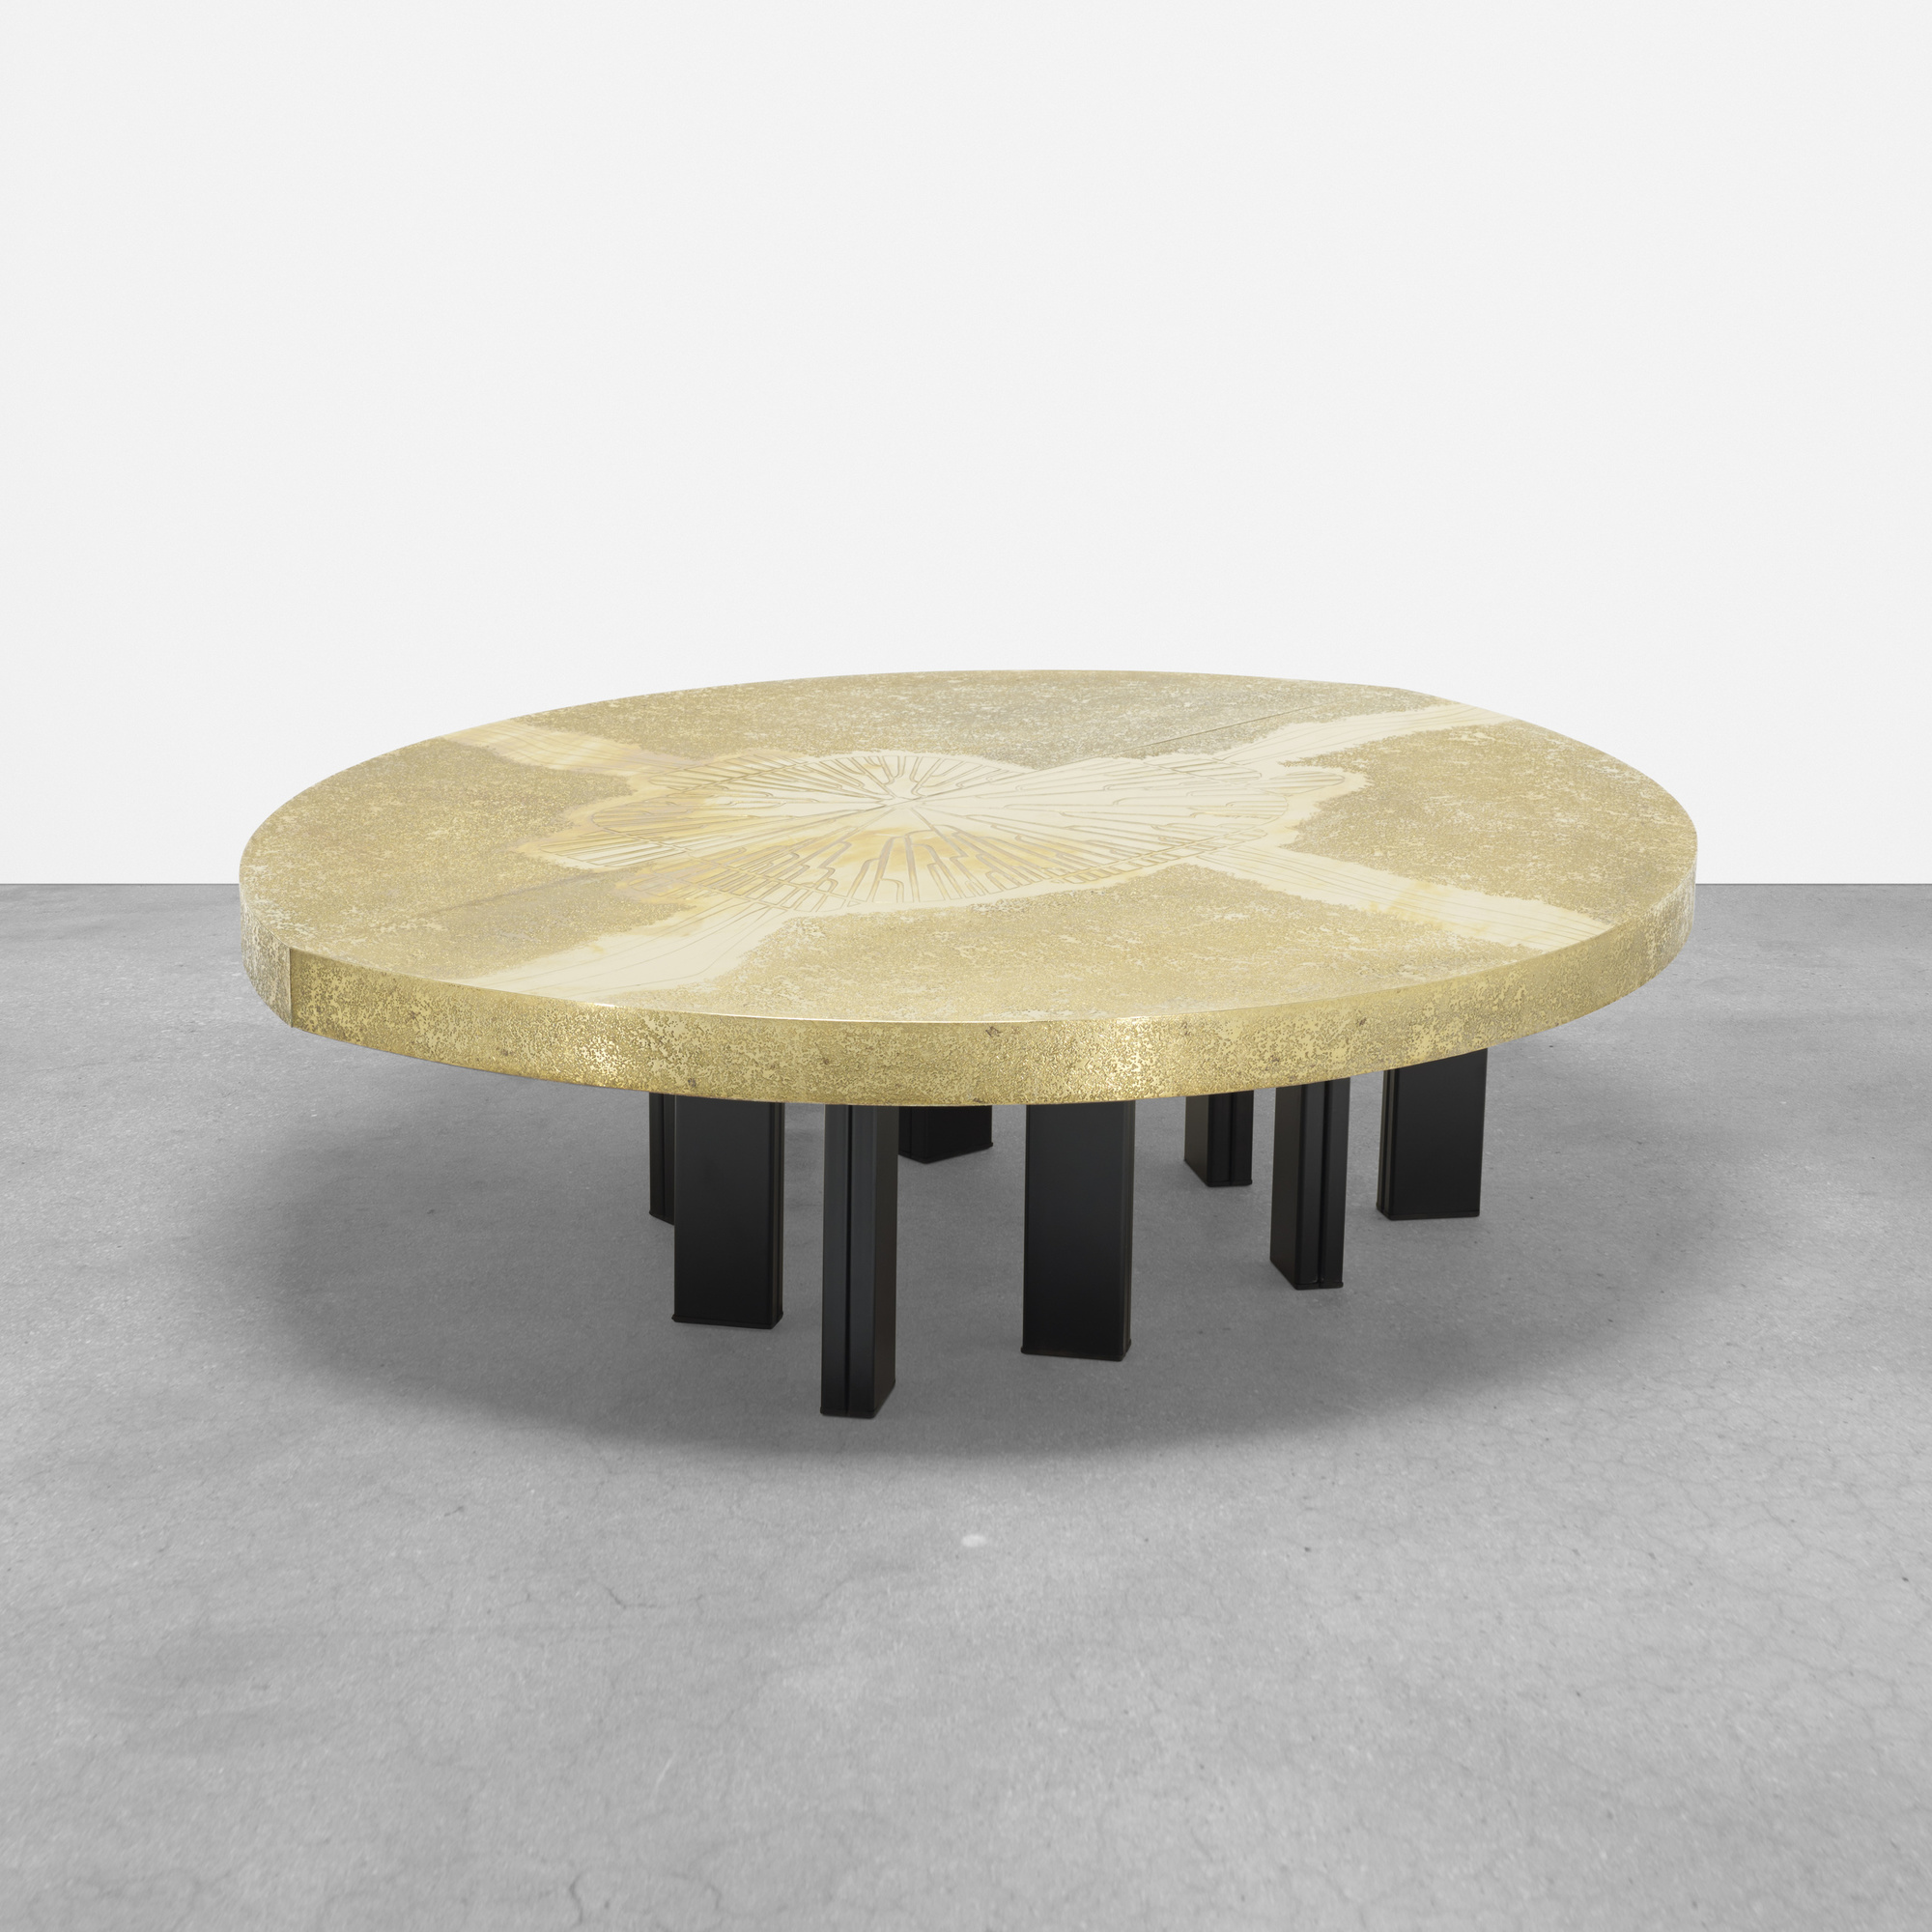 404: Georges Mathias / coffee table (1 of 3)